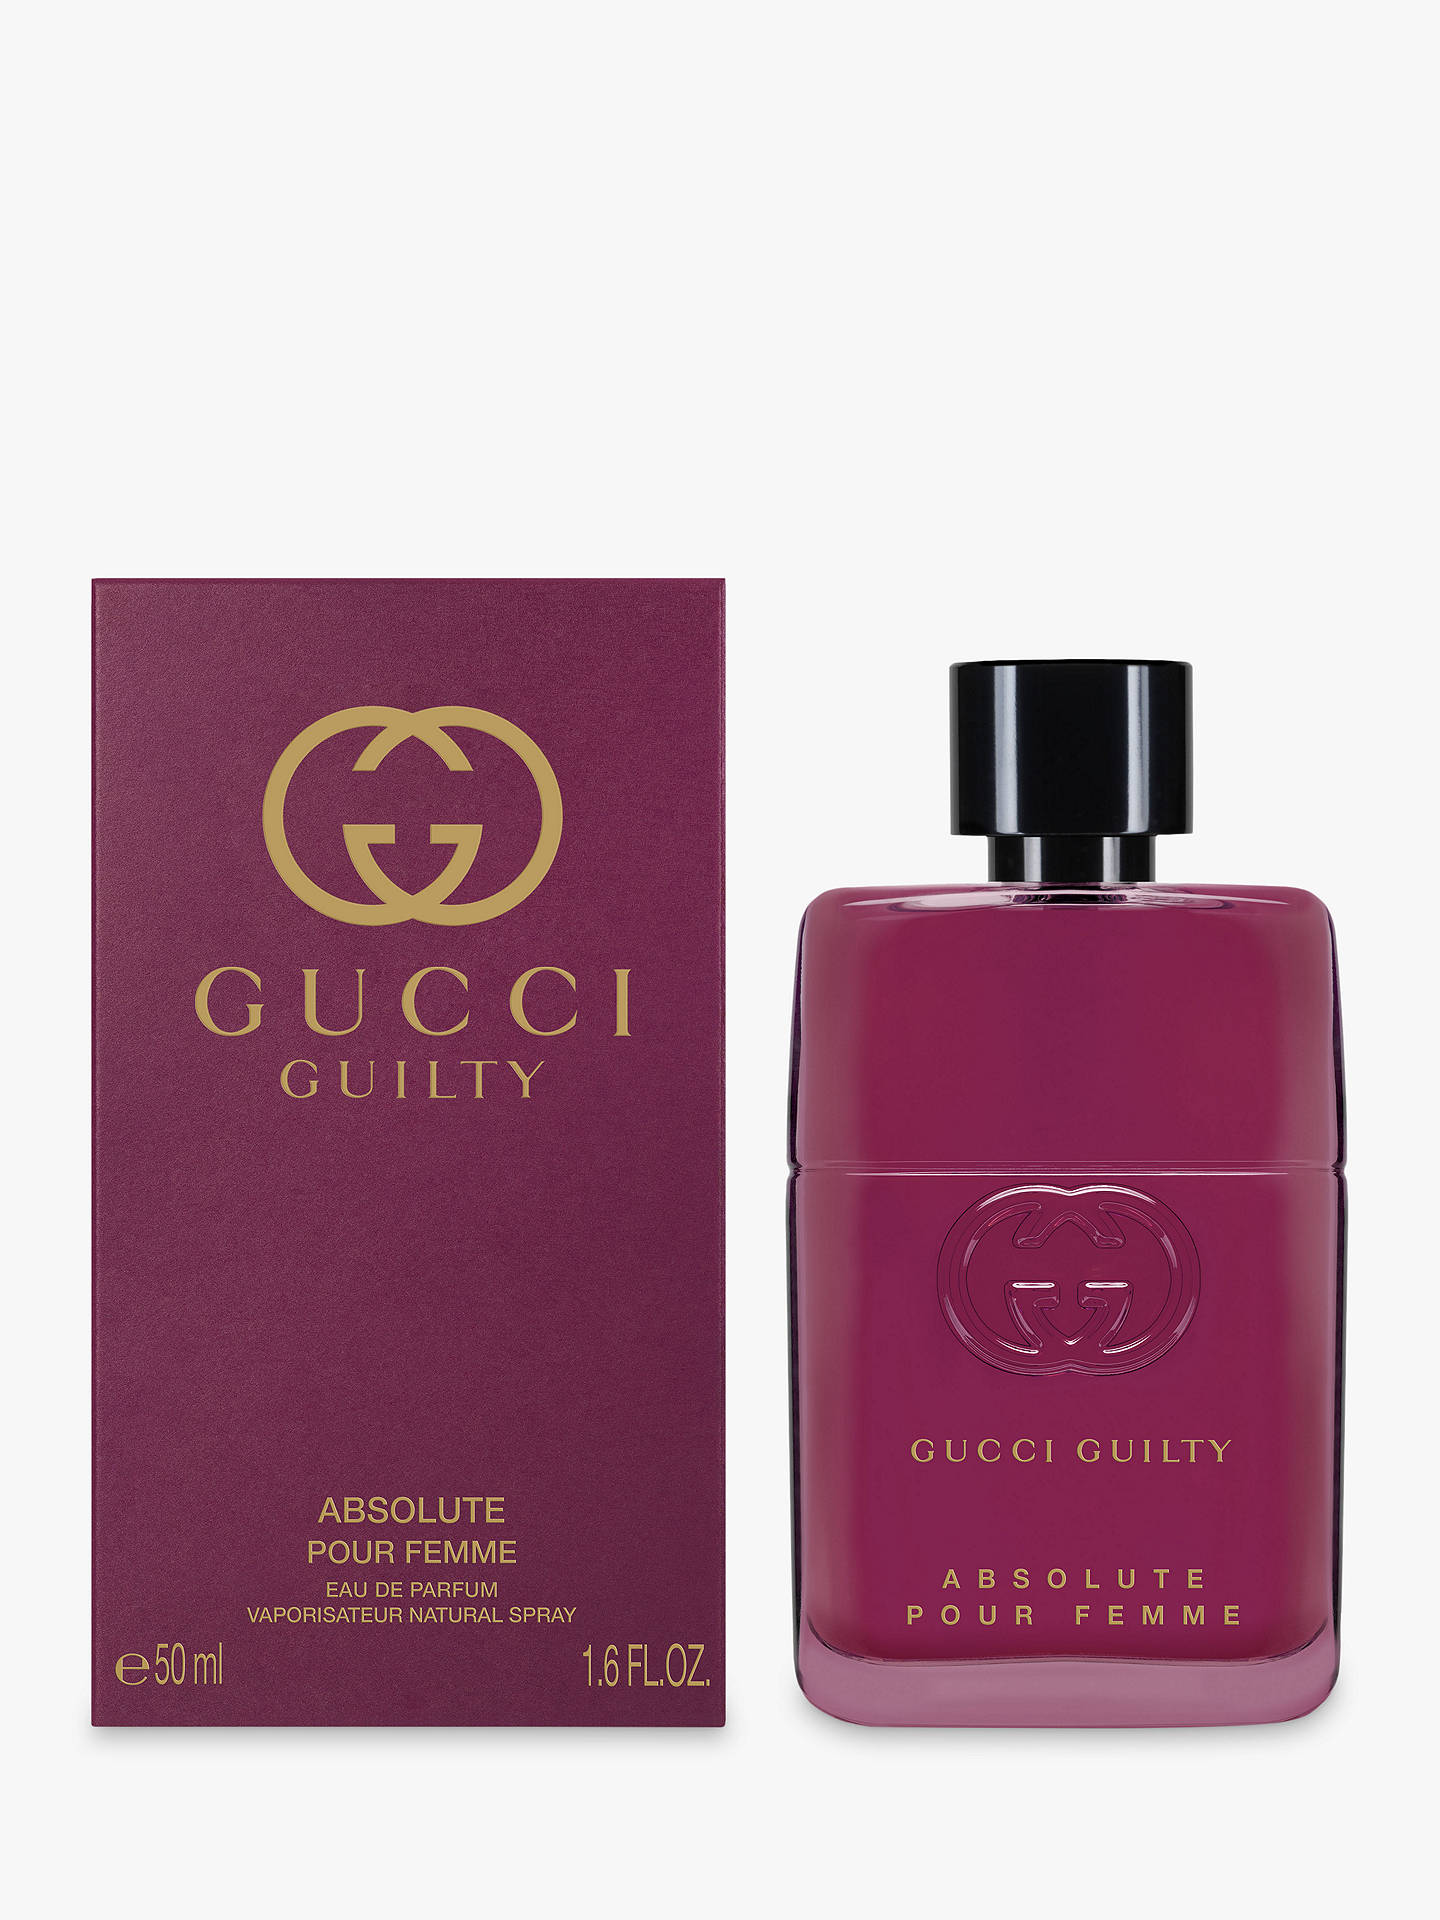 BuyGucci Guilty Absolute Pour Femme Eau de Parfum, 30ml Online at johnlewis.com